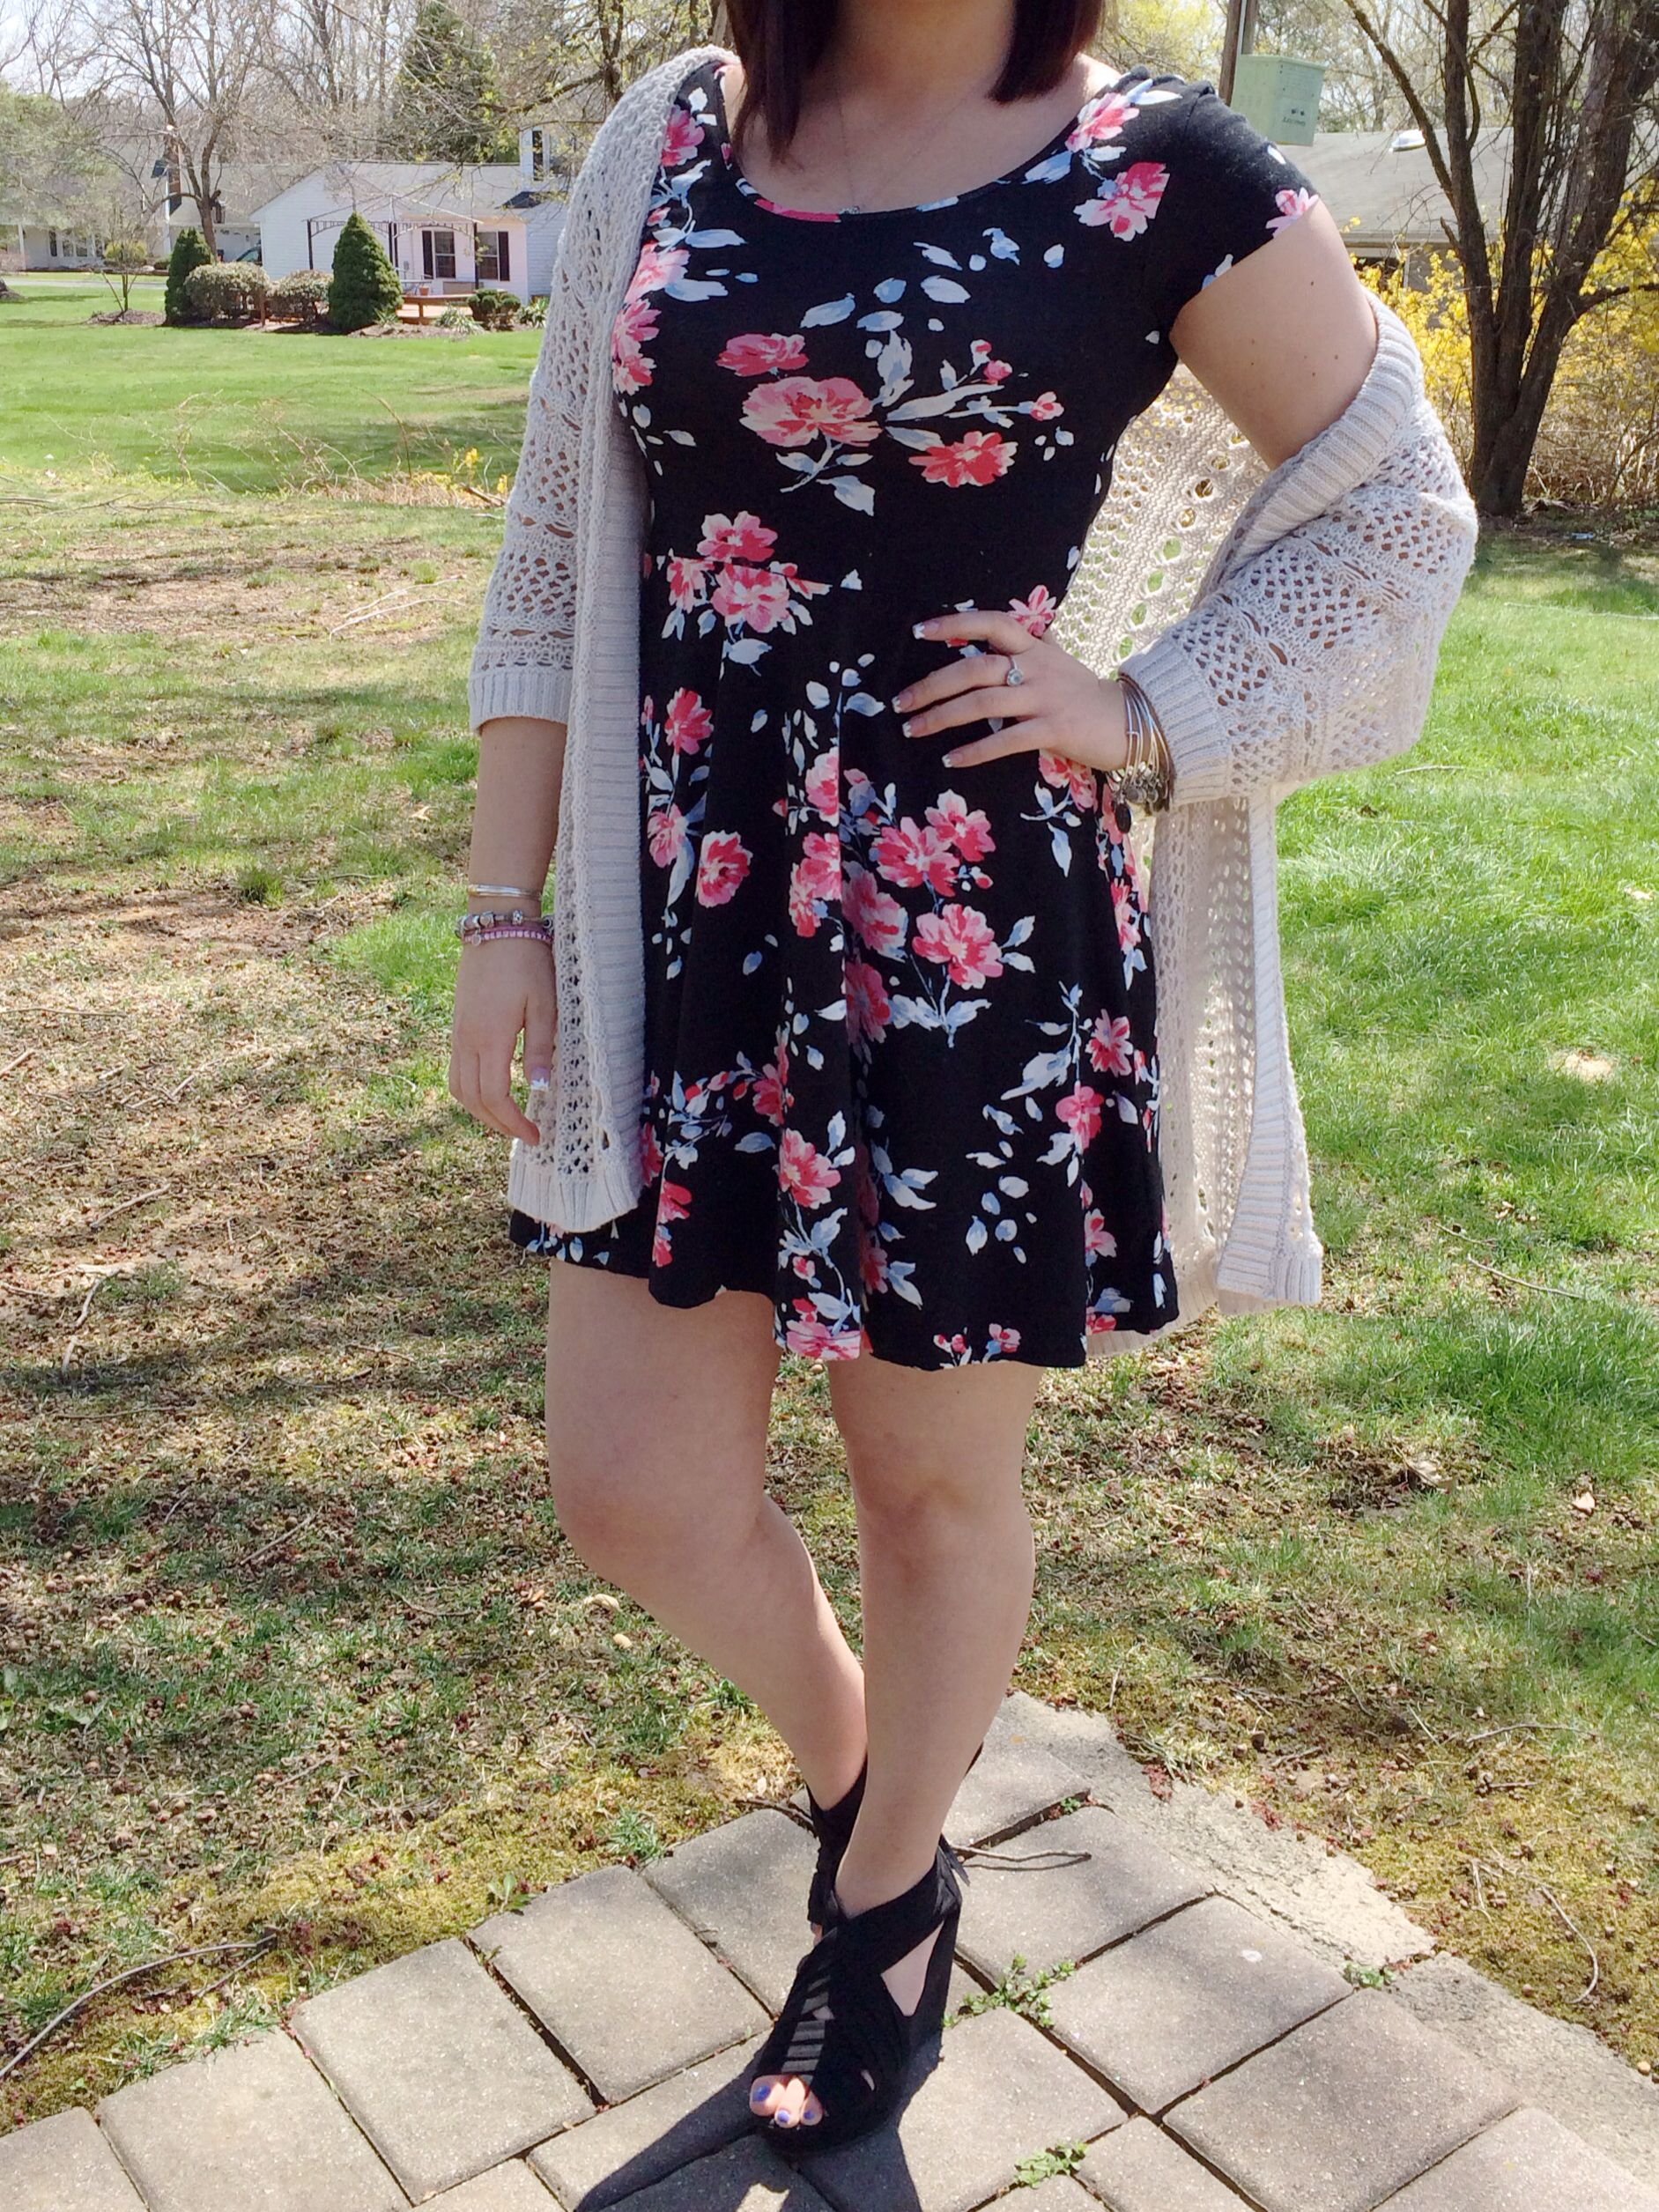 Black dress and cardigan - Outfit Details Aeropostale Floral Dress Bethany Mota Cream Knit Cardigan